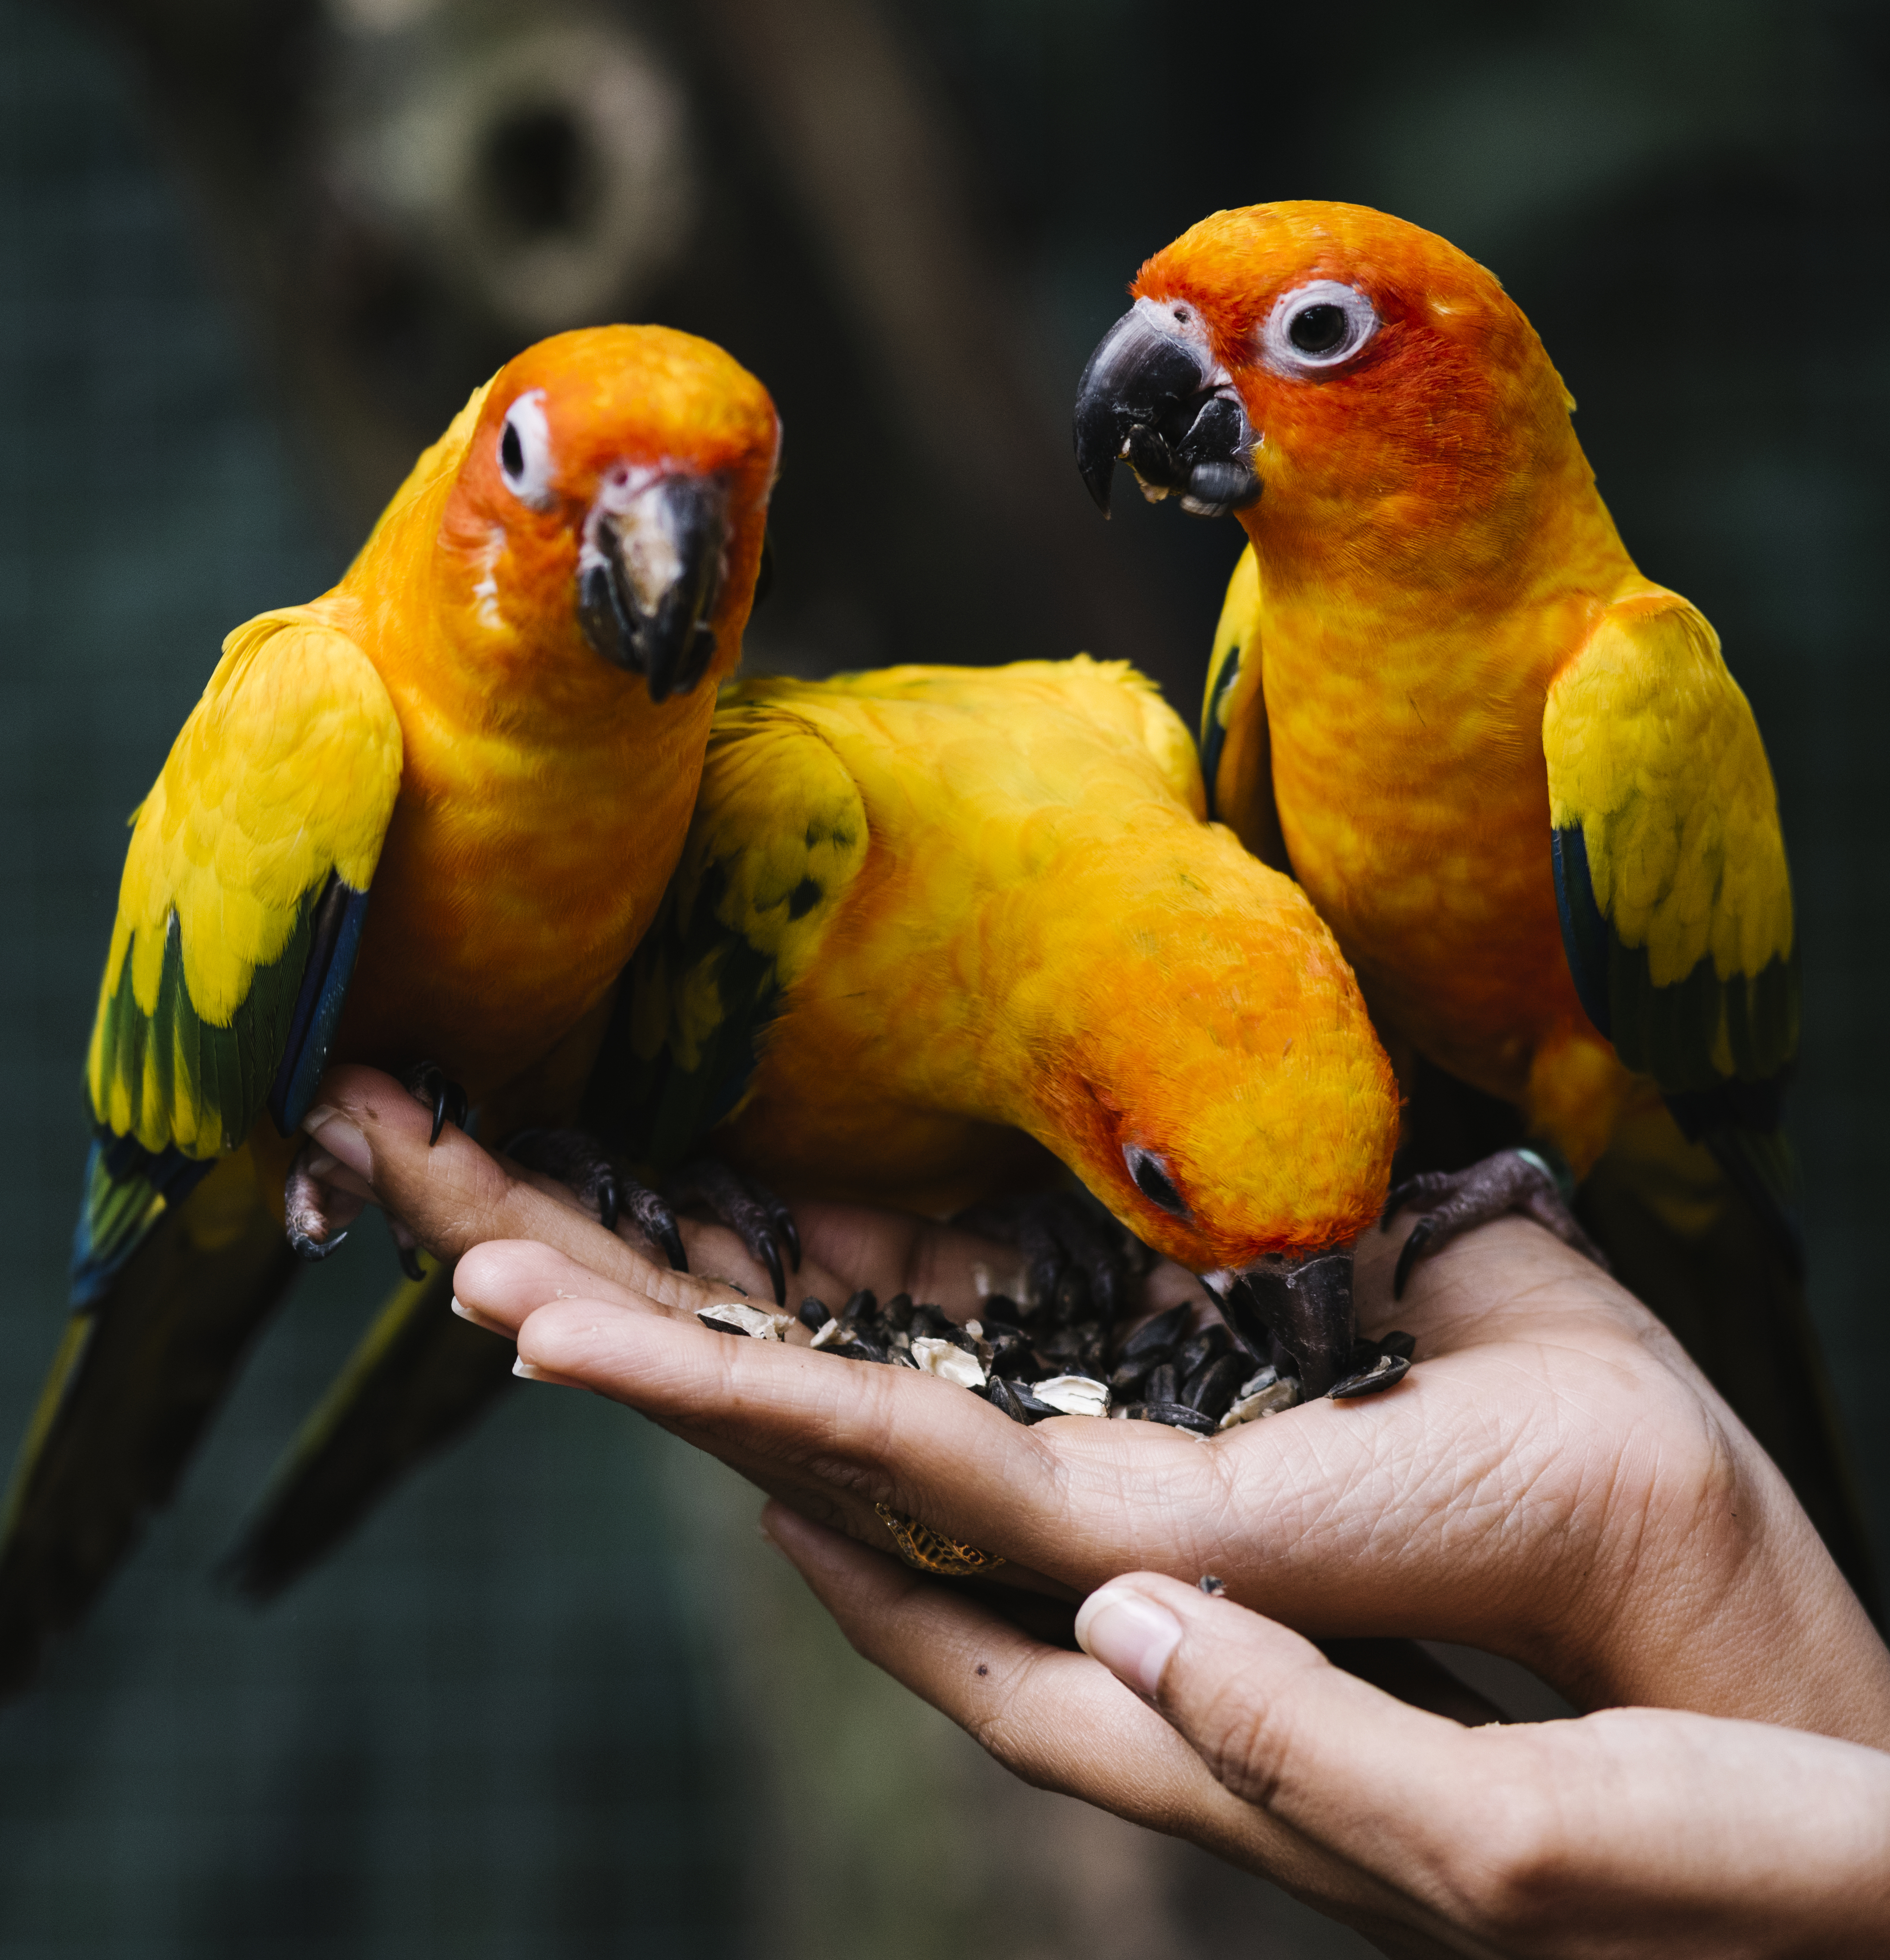 Three yellow birds perched on an open hand eating seeds